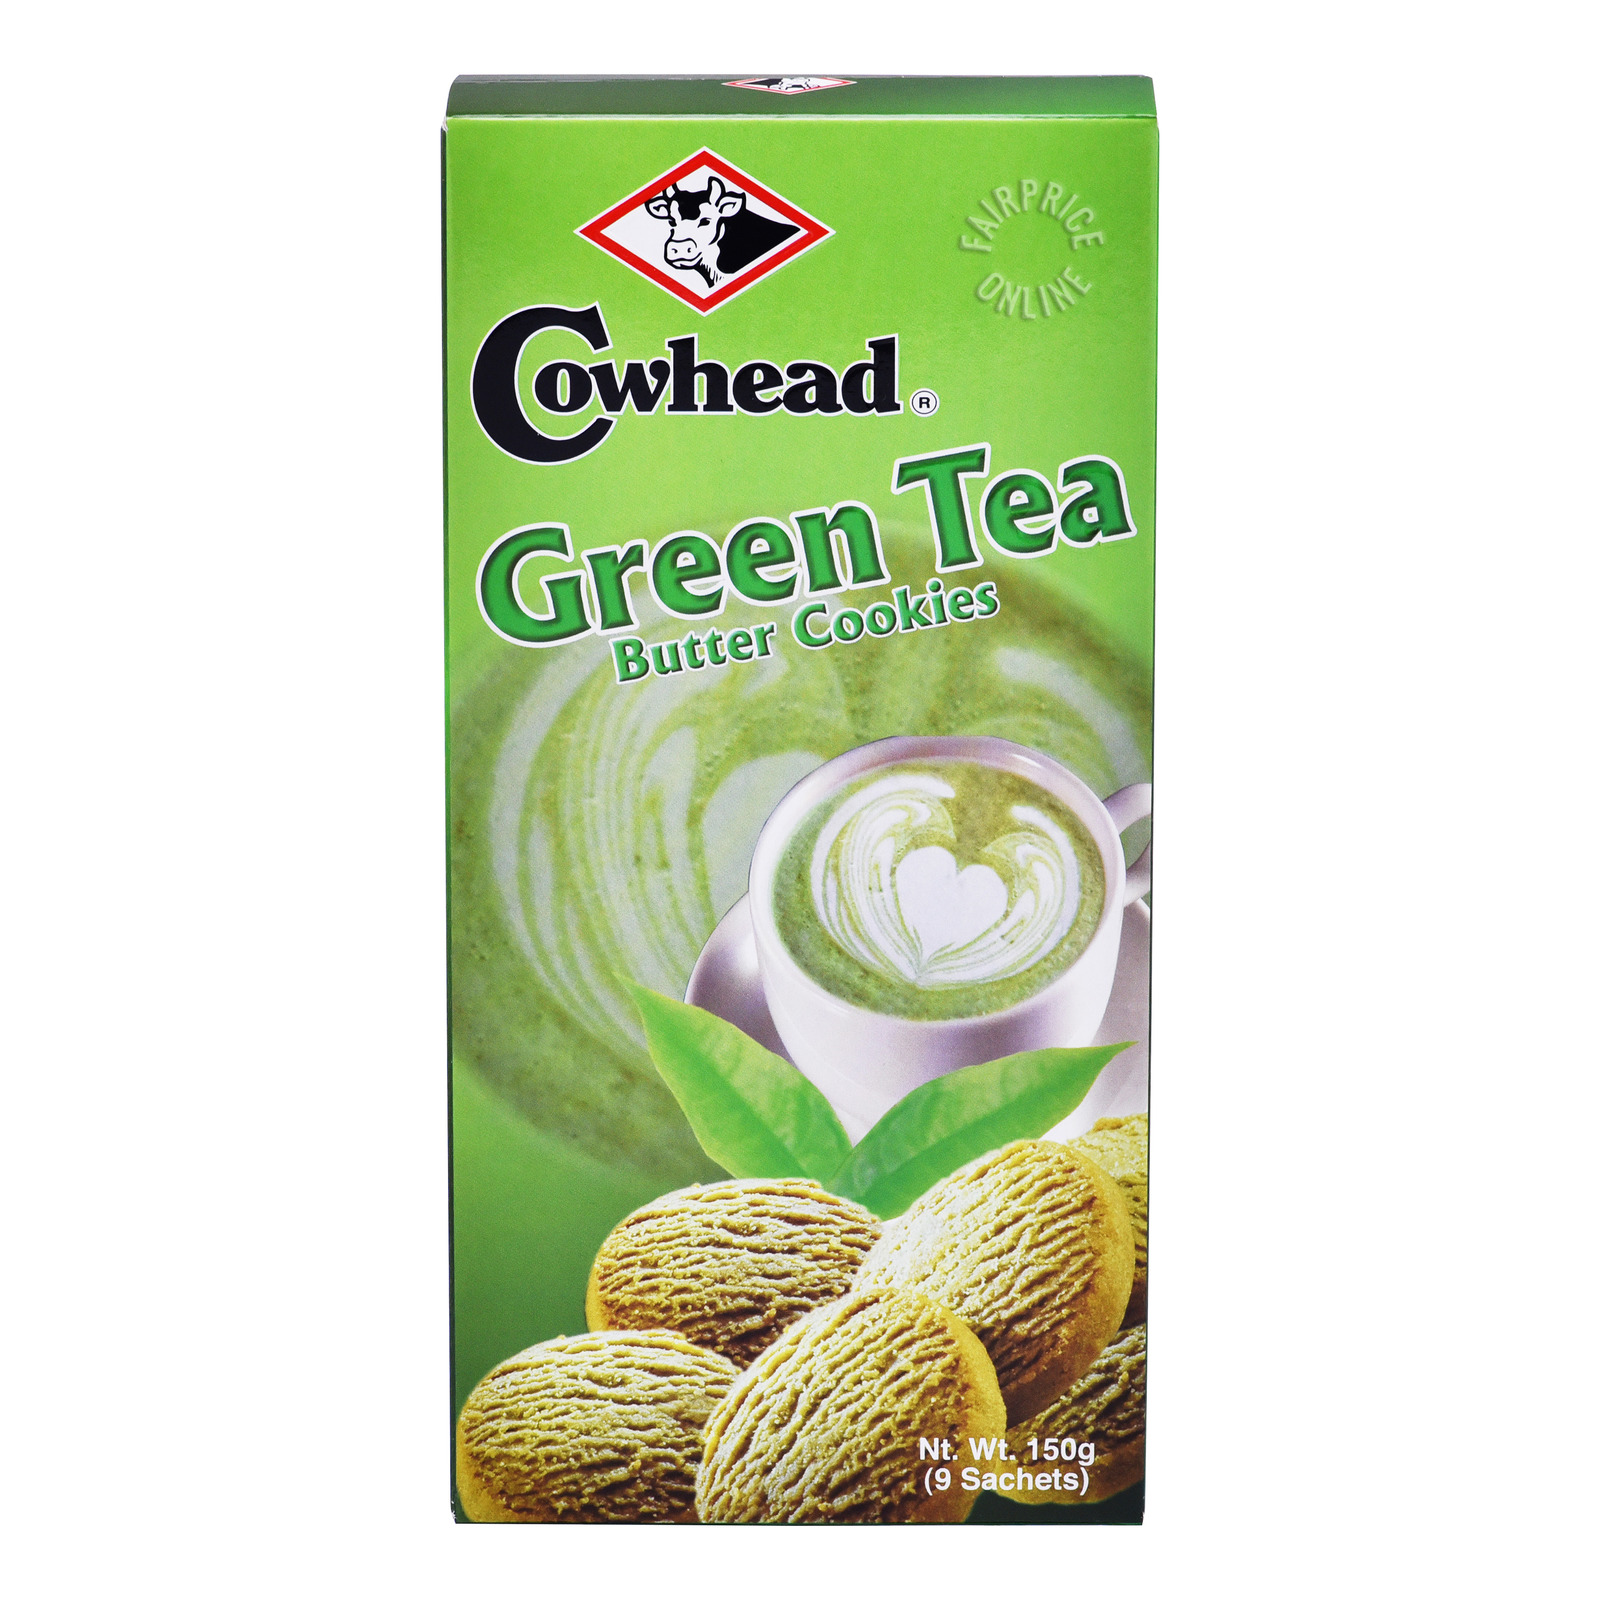 Cowhead Butter Cookies - Green Tea